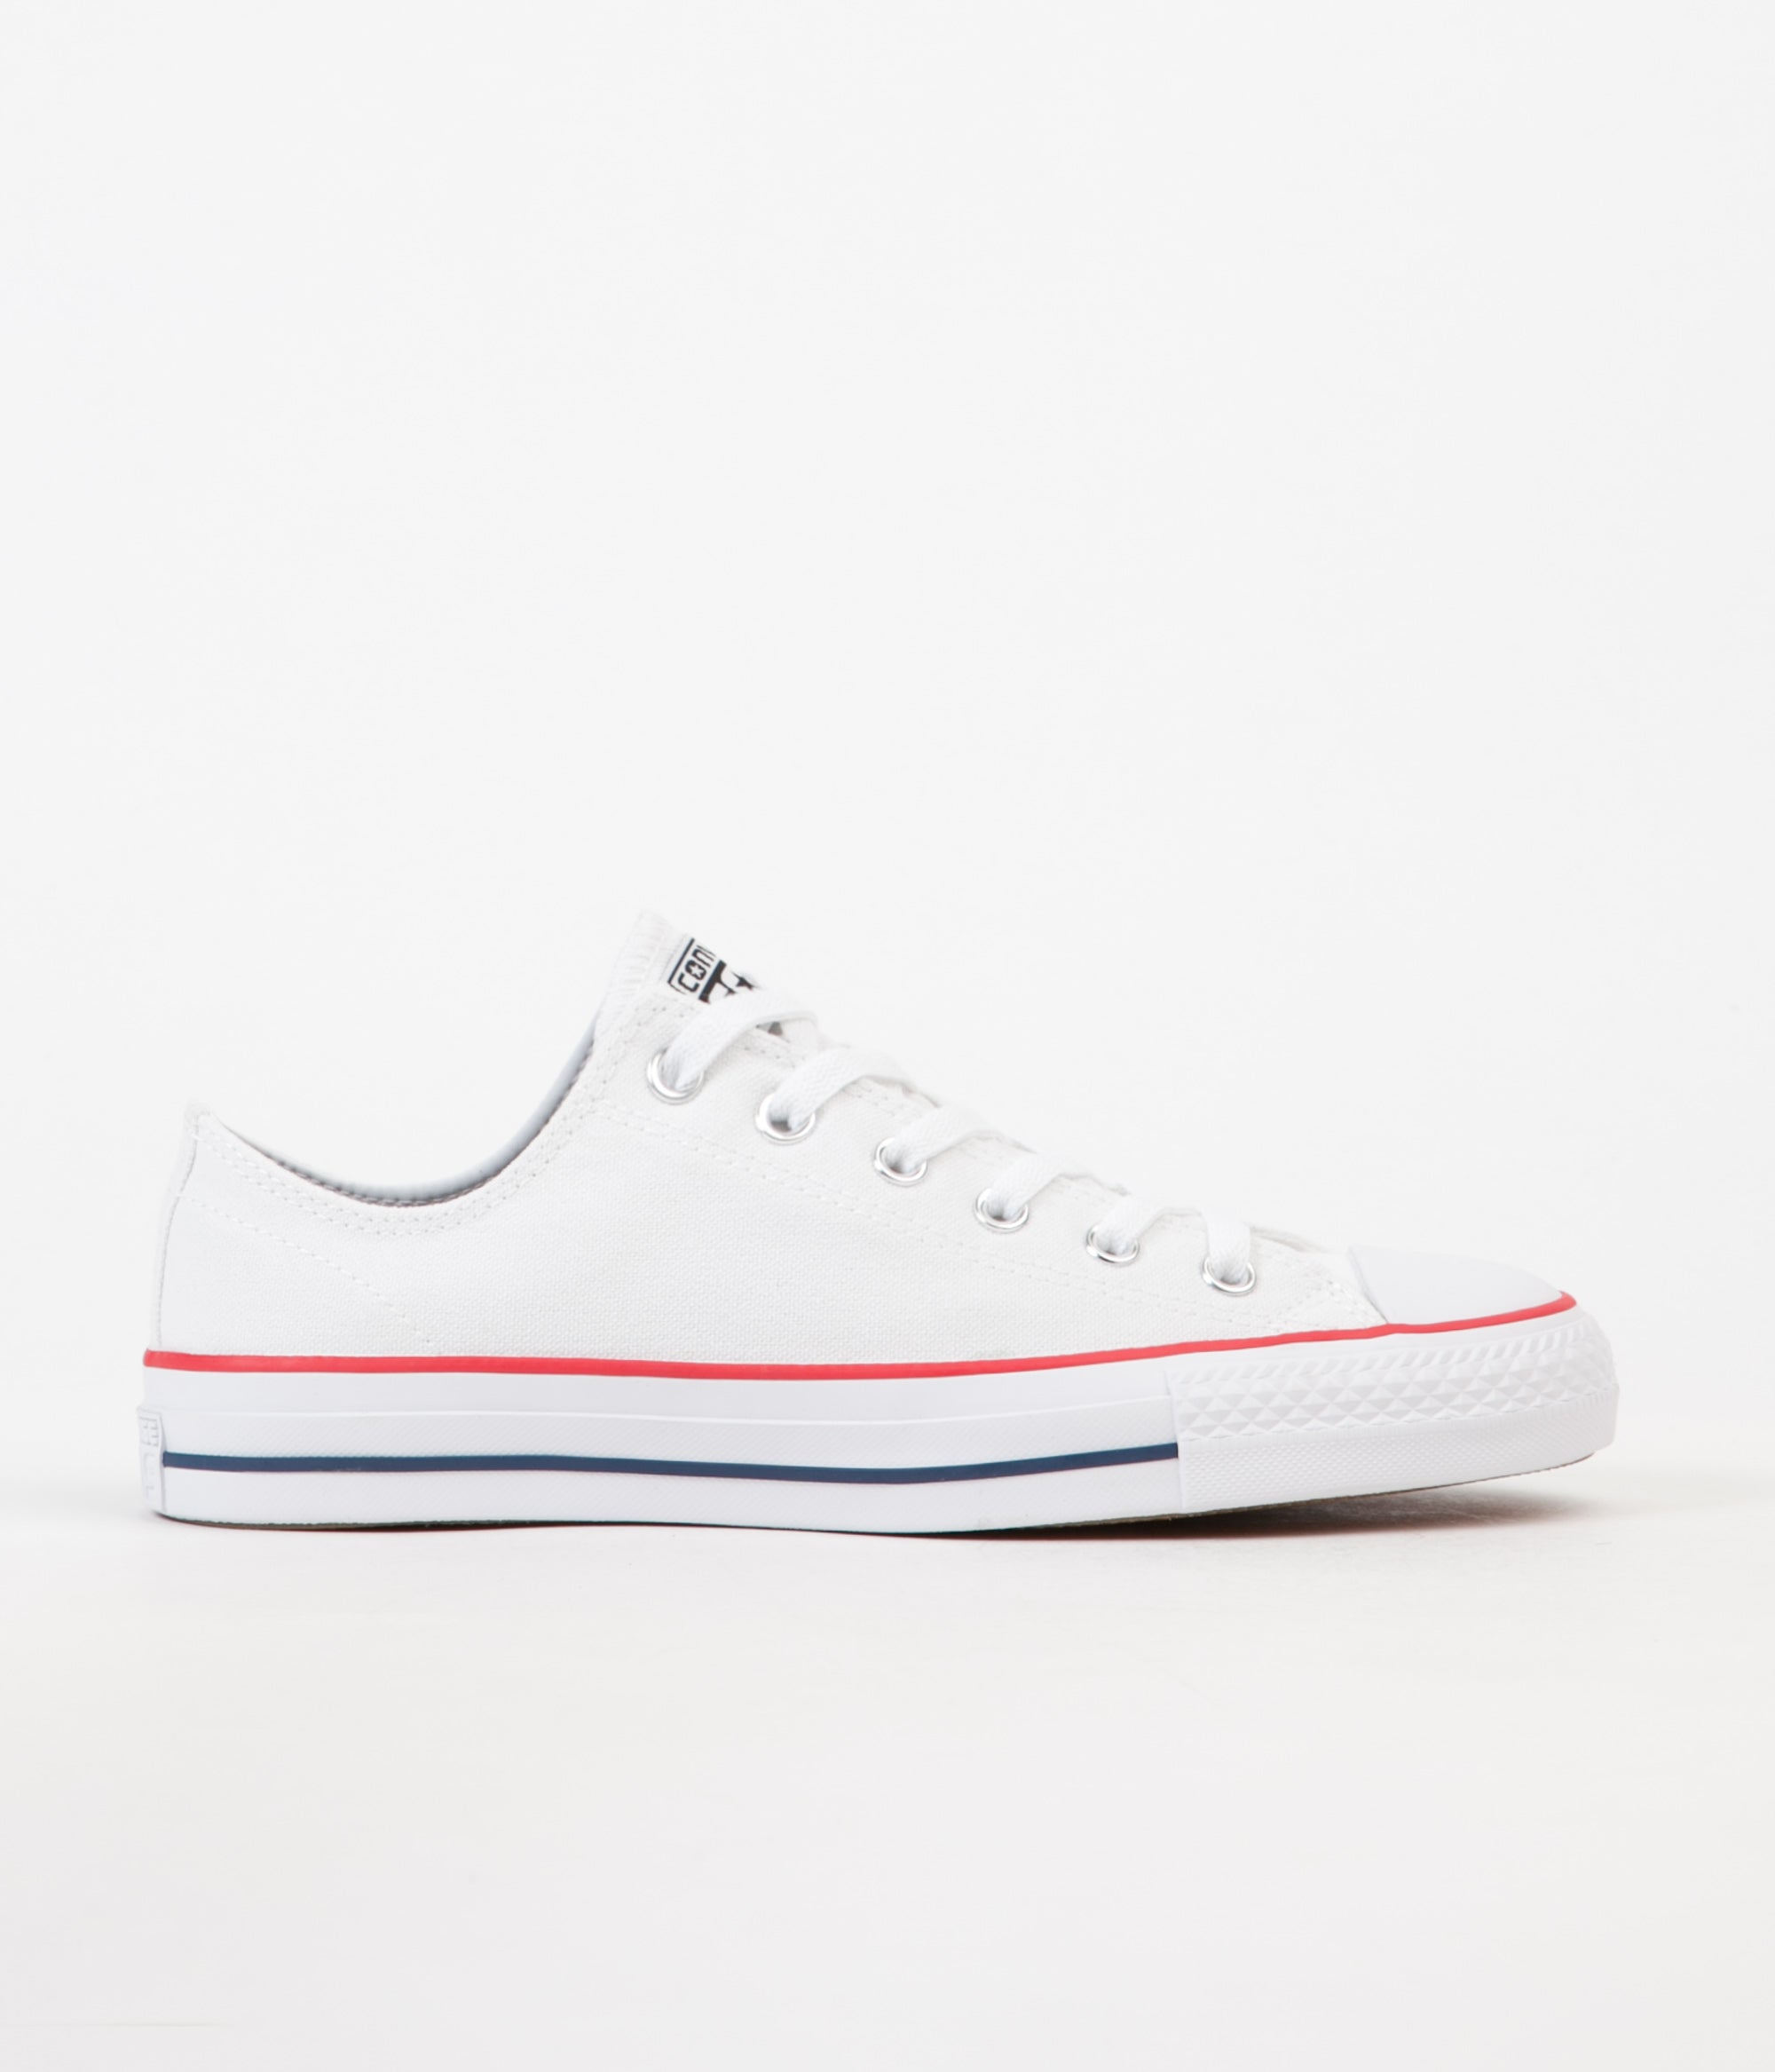 b96d9604564826 Converse CTAS Pro Ox Shoes - White   Red   Insignia Blue